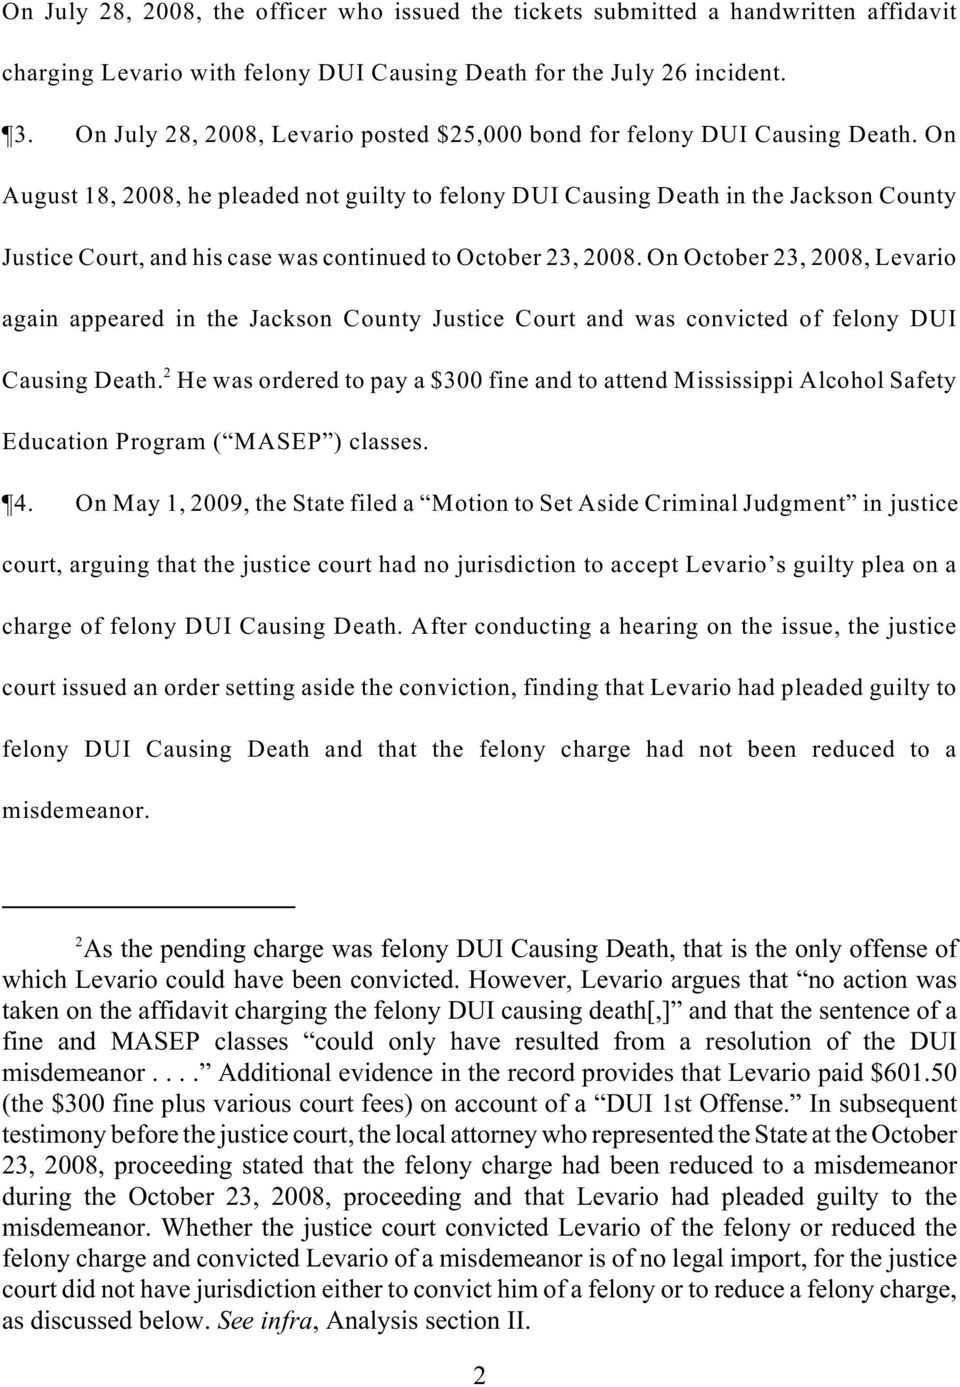 On August 18, 2008, he pleaded not guilty to felony DUI Causing Death in the Jackson County Justice Court, and his case was continued to October 23, 2008.